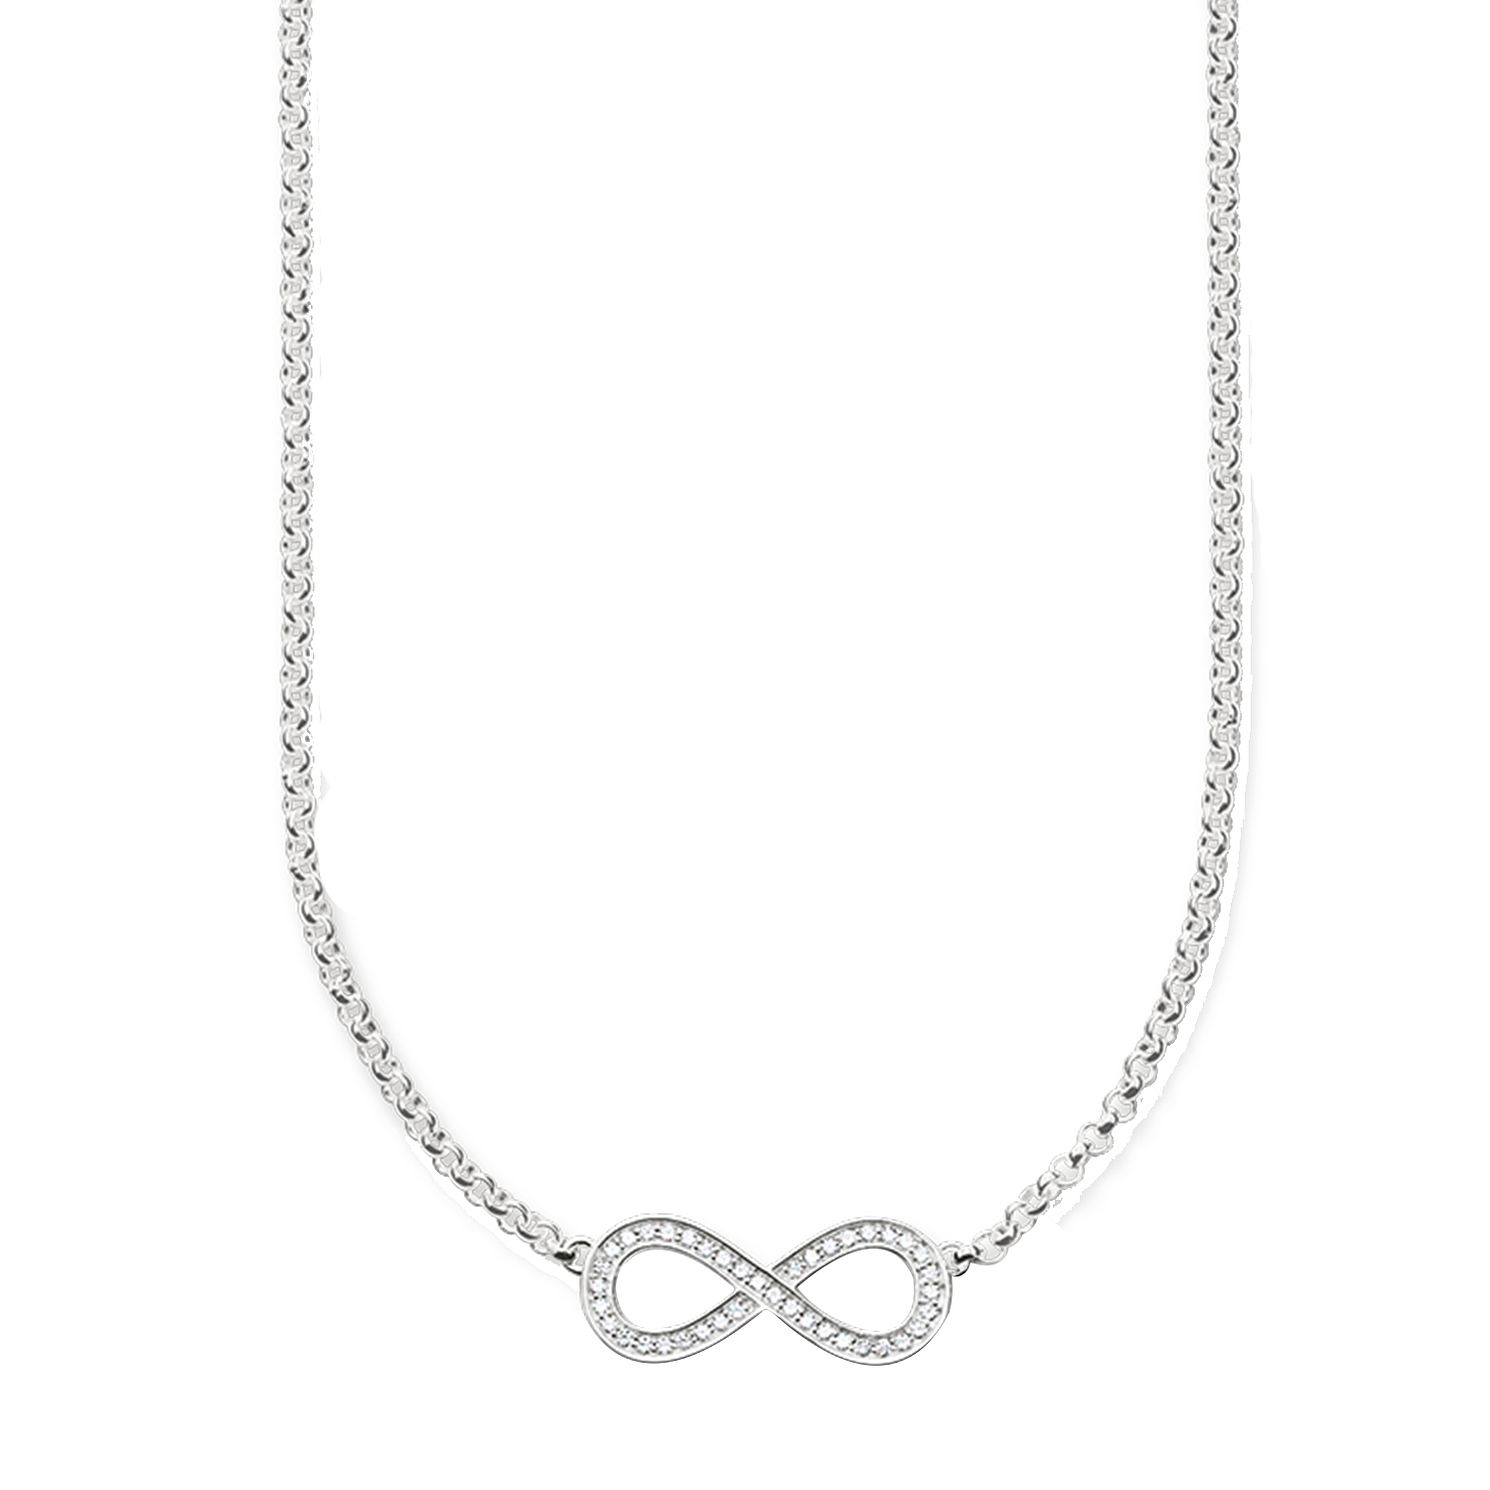 Thomas Sabo Sterling Silver Stone Set Necklace - Product number 5698731